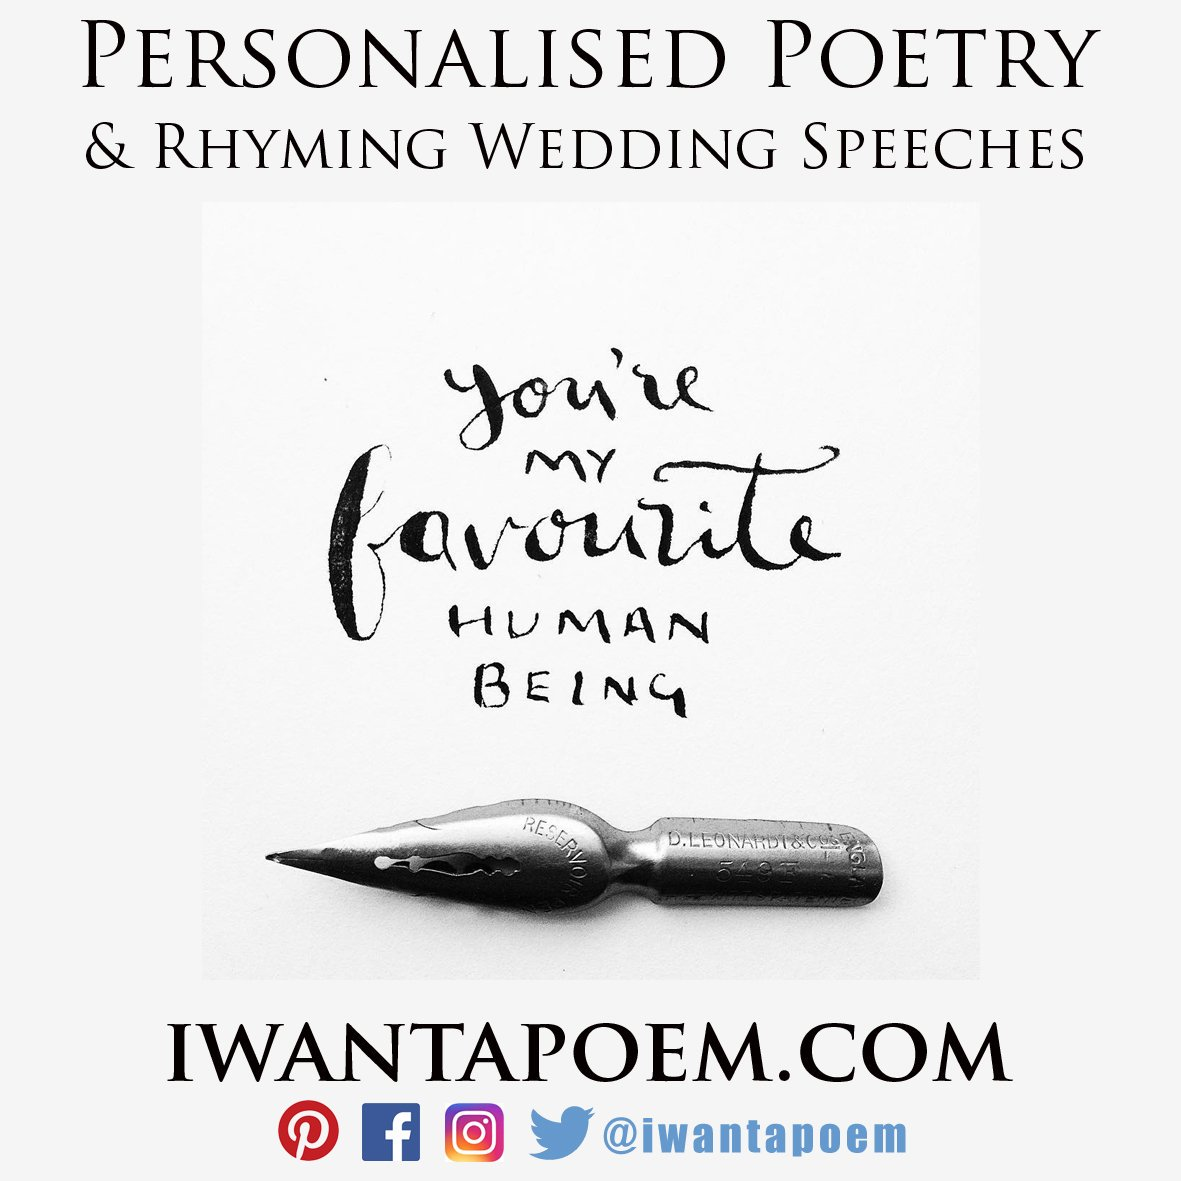 wedding anniversary poems - custom poetry written for you @iwantapoem